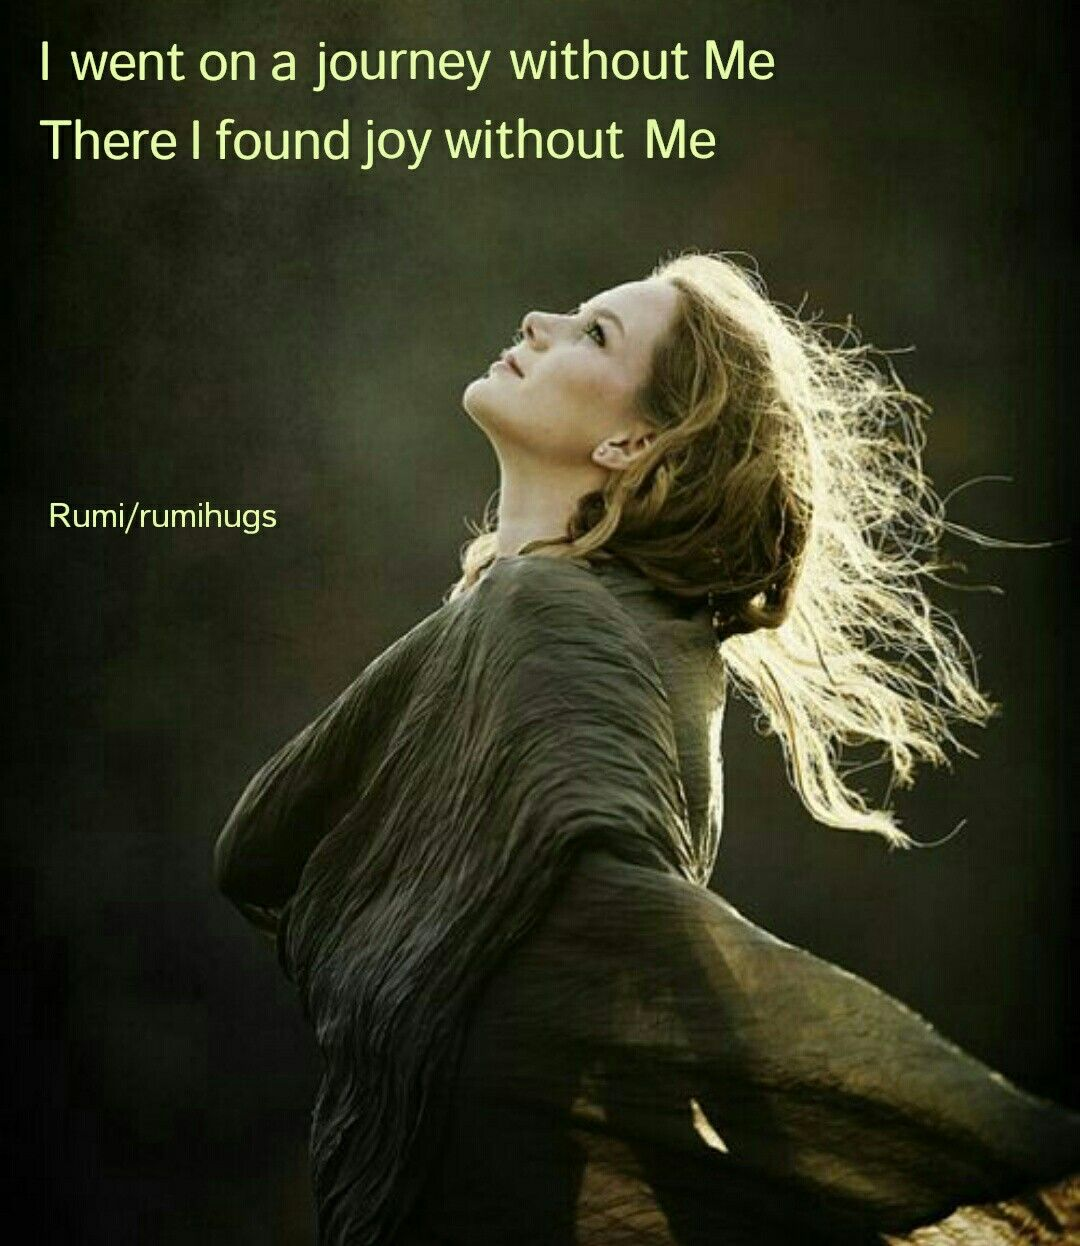 I went on a journey without me and there I found a joy ...